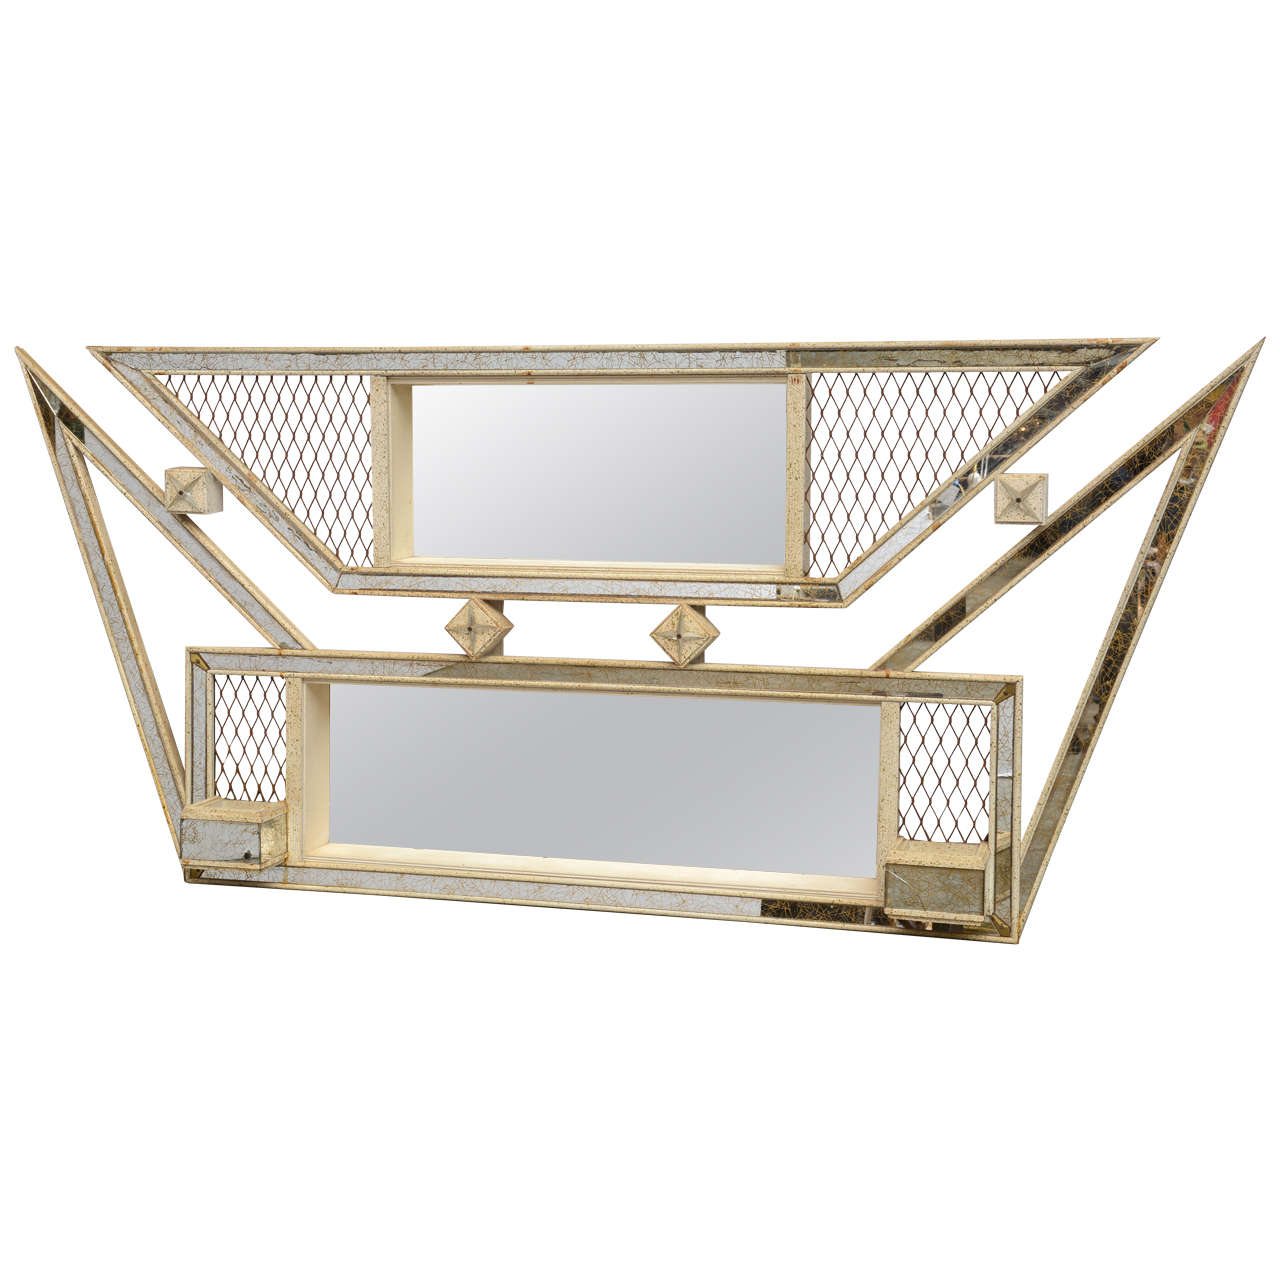 Fabulous 1950s mirrored shadow box at 1stdibs for Mirrored box shelves